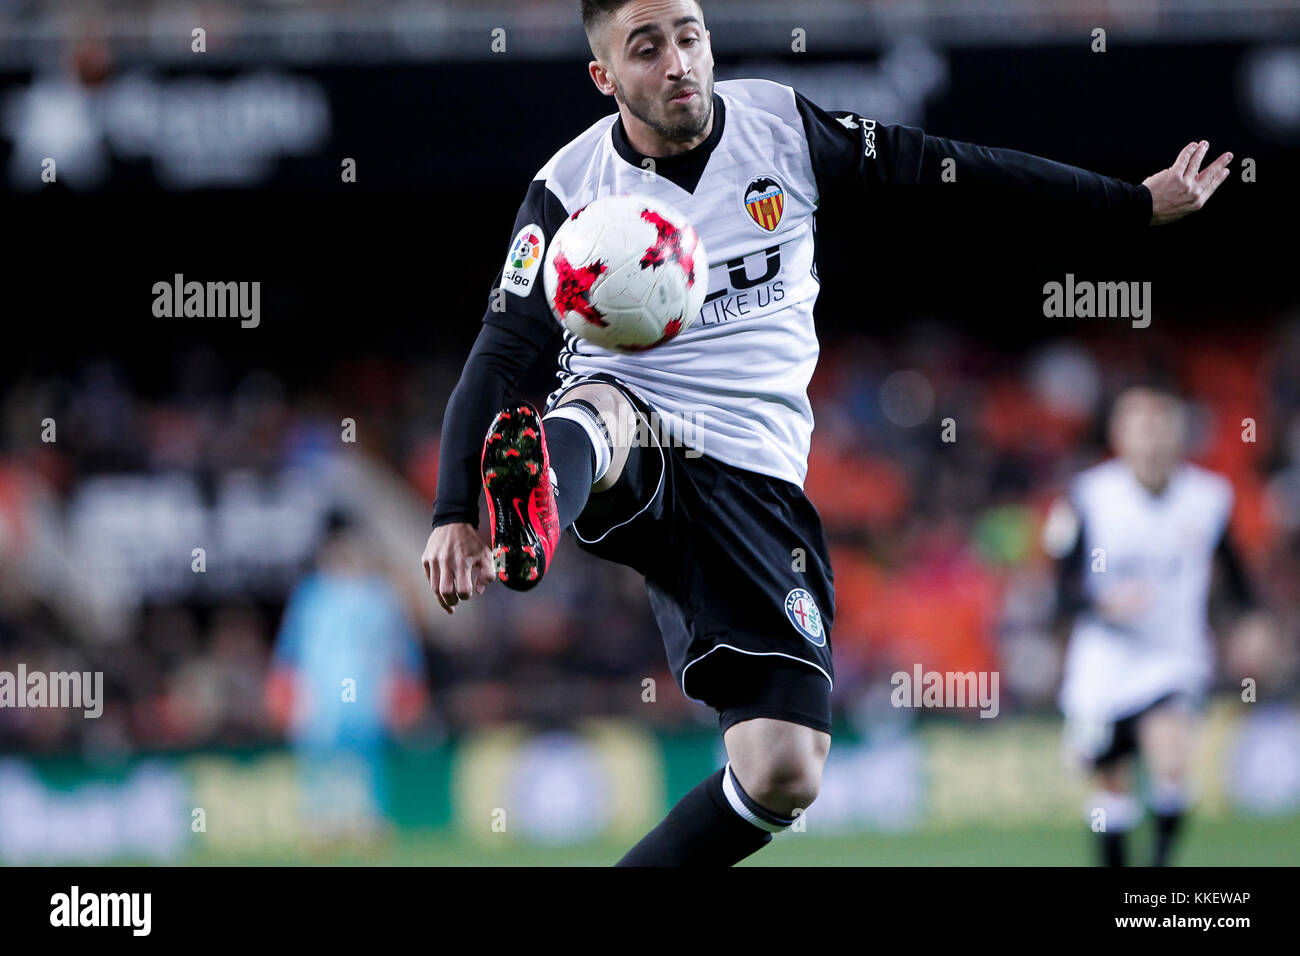 Nacho gil  during spanish the Copa del Rey, Round of 32, Second Leg  match between Valencia CF vs Real Zaragoza Stock Photo